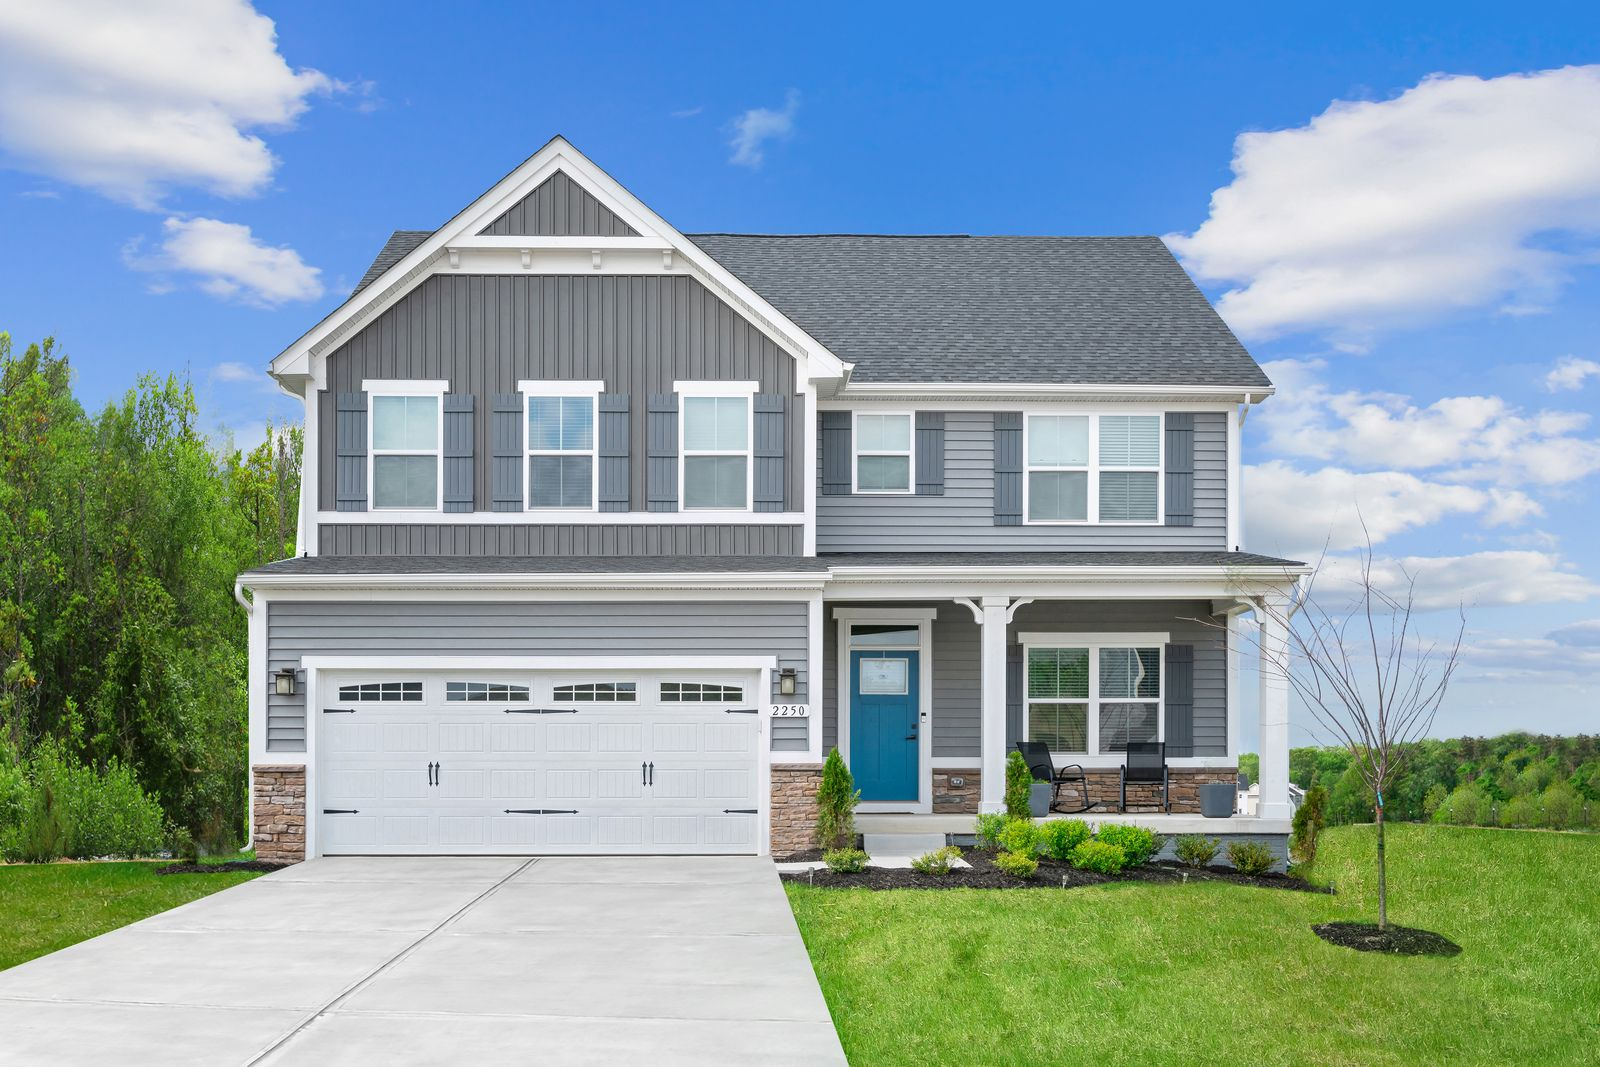 NEW 2-STORY AND RANCH HOMES IN BEAVERCREEK SCHOOLS AT RIVER RESERVE:Luxury features & finished basement included! Located on Indian Ripple, minutes to The Greene & WPAFB. From the $290s.Click here to schedule your visit to River Reserve today!